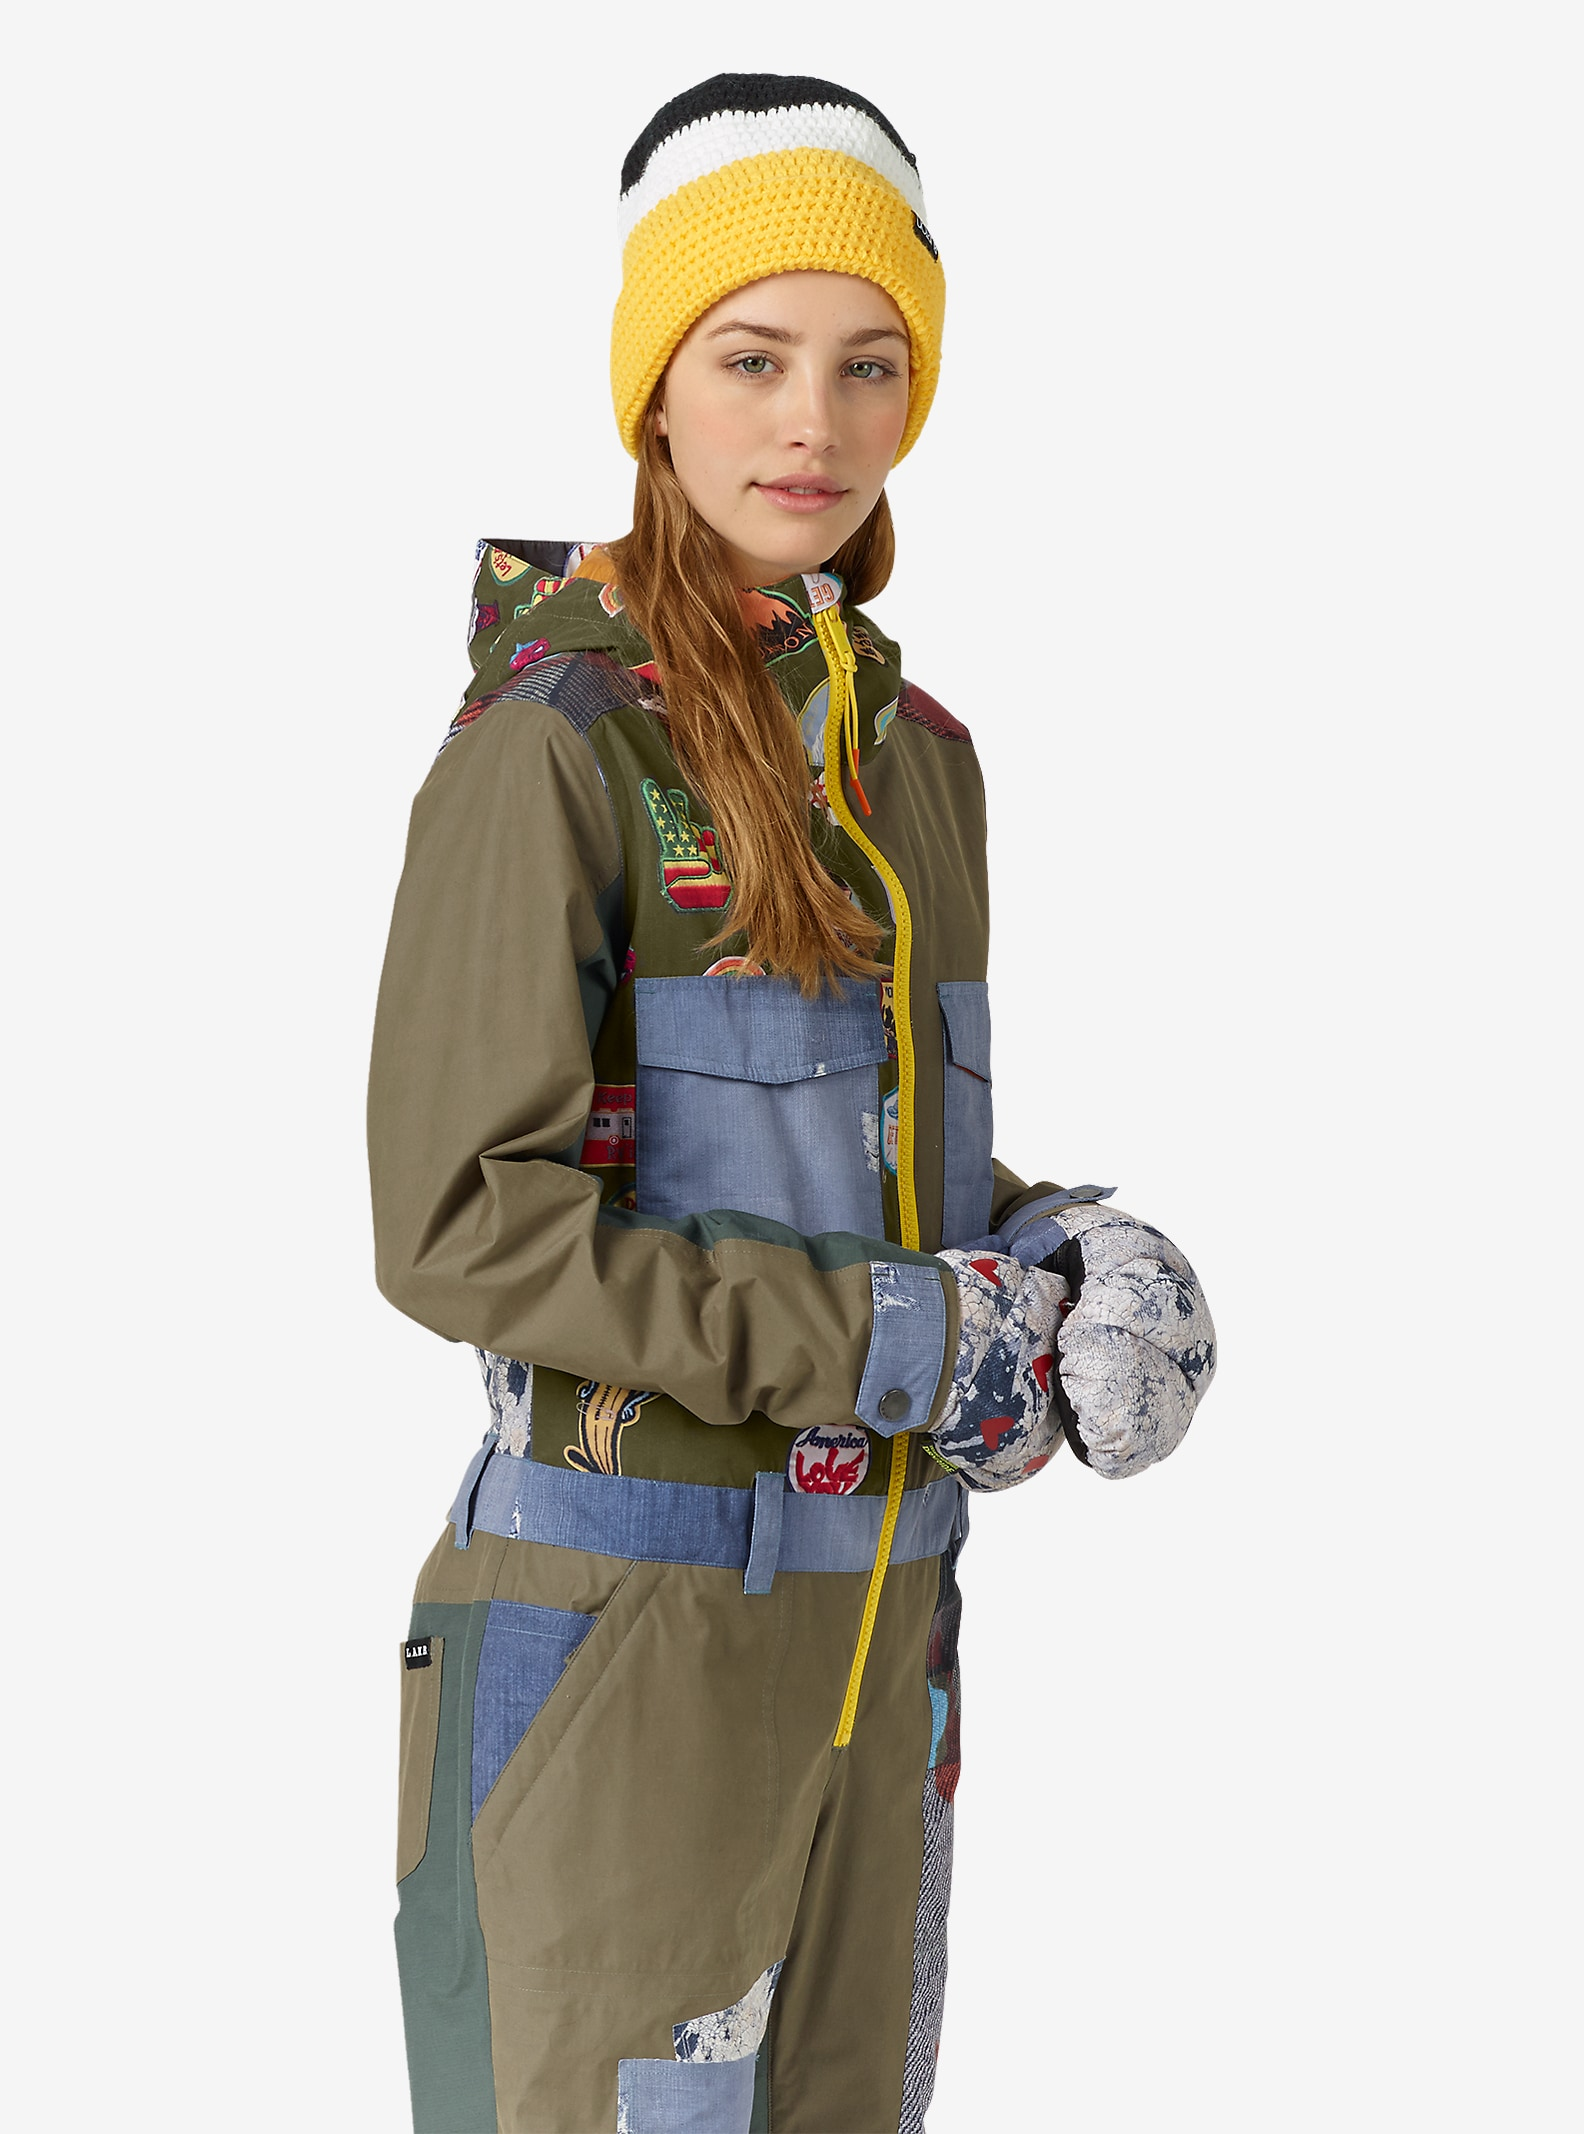 L.A.M.B. x Burton Suzi Overall angezeigt in Dusty Olive